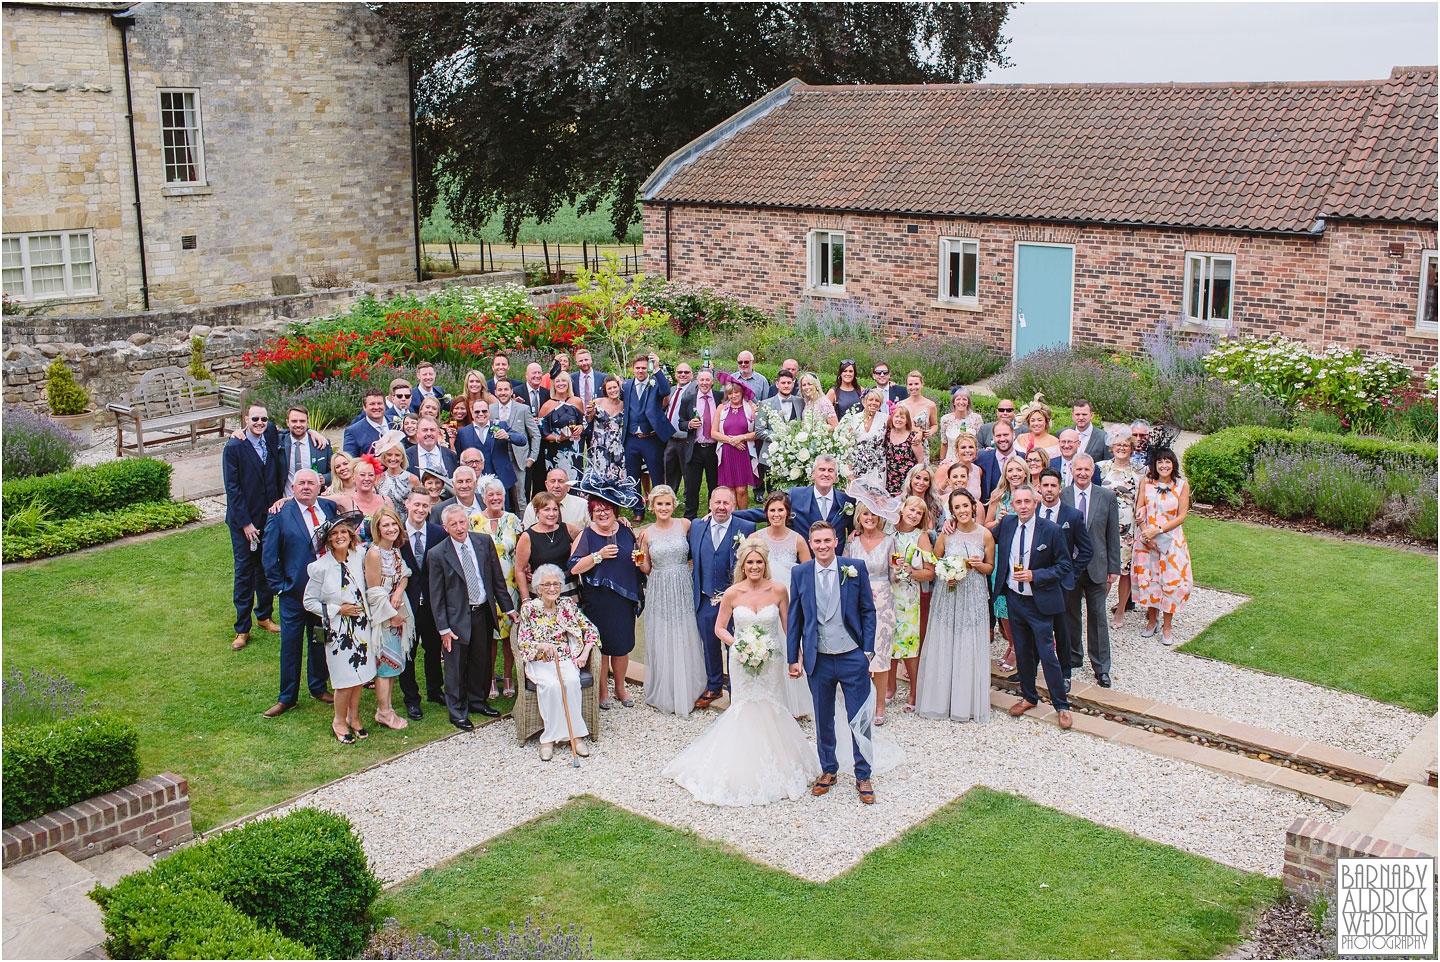 Priory Cottages wedding near Wetherby in Yorkshire